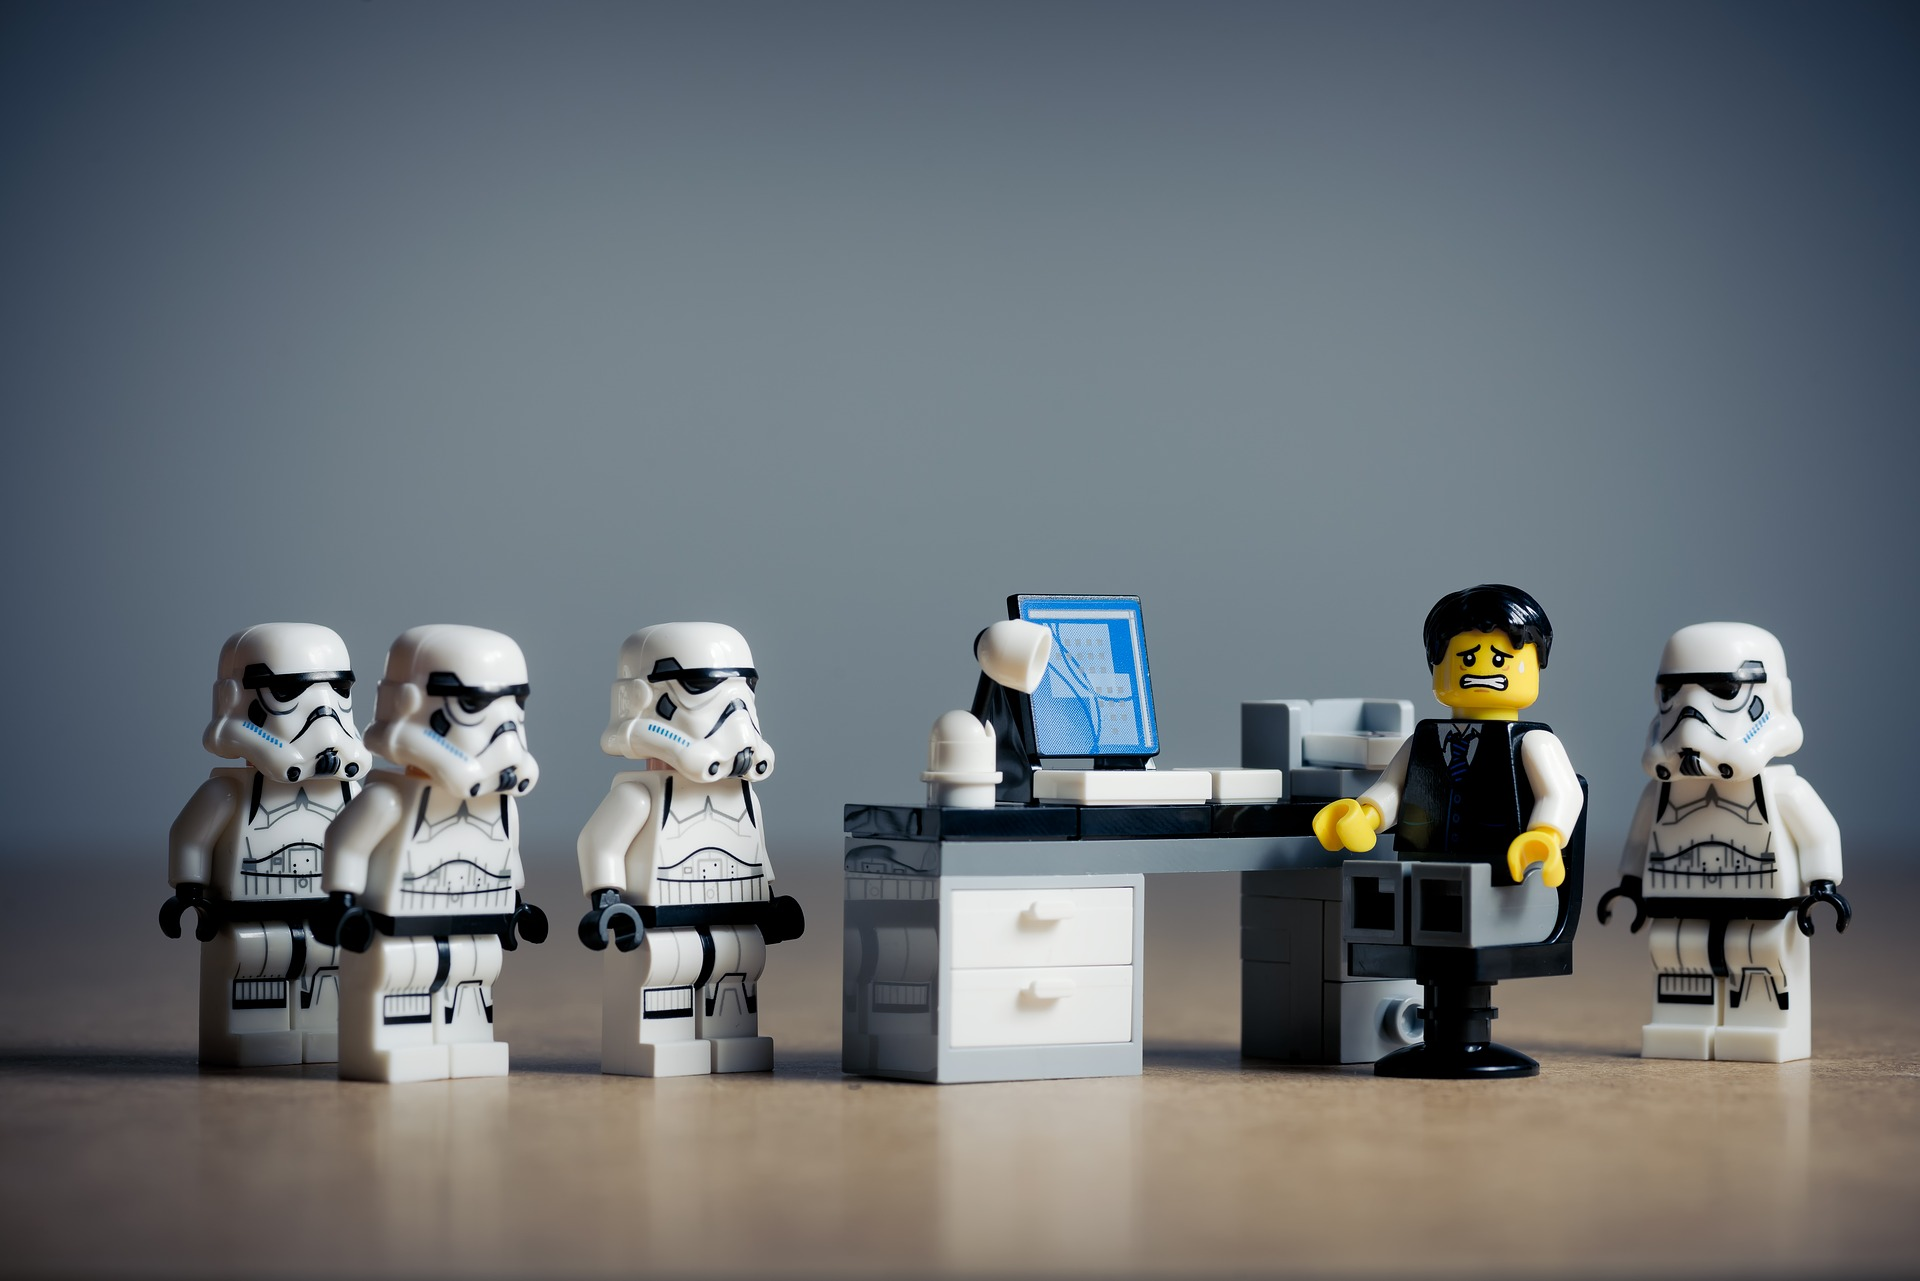 Lego Storm Troopers standing at Desk of Lego Man